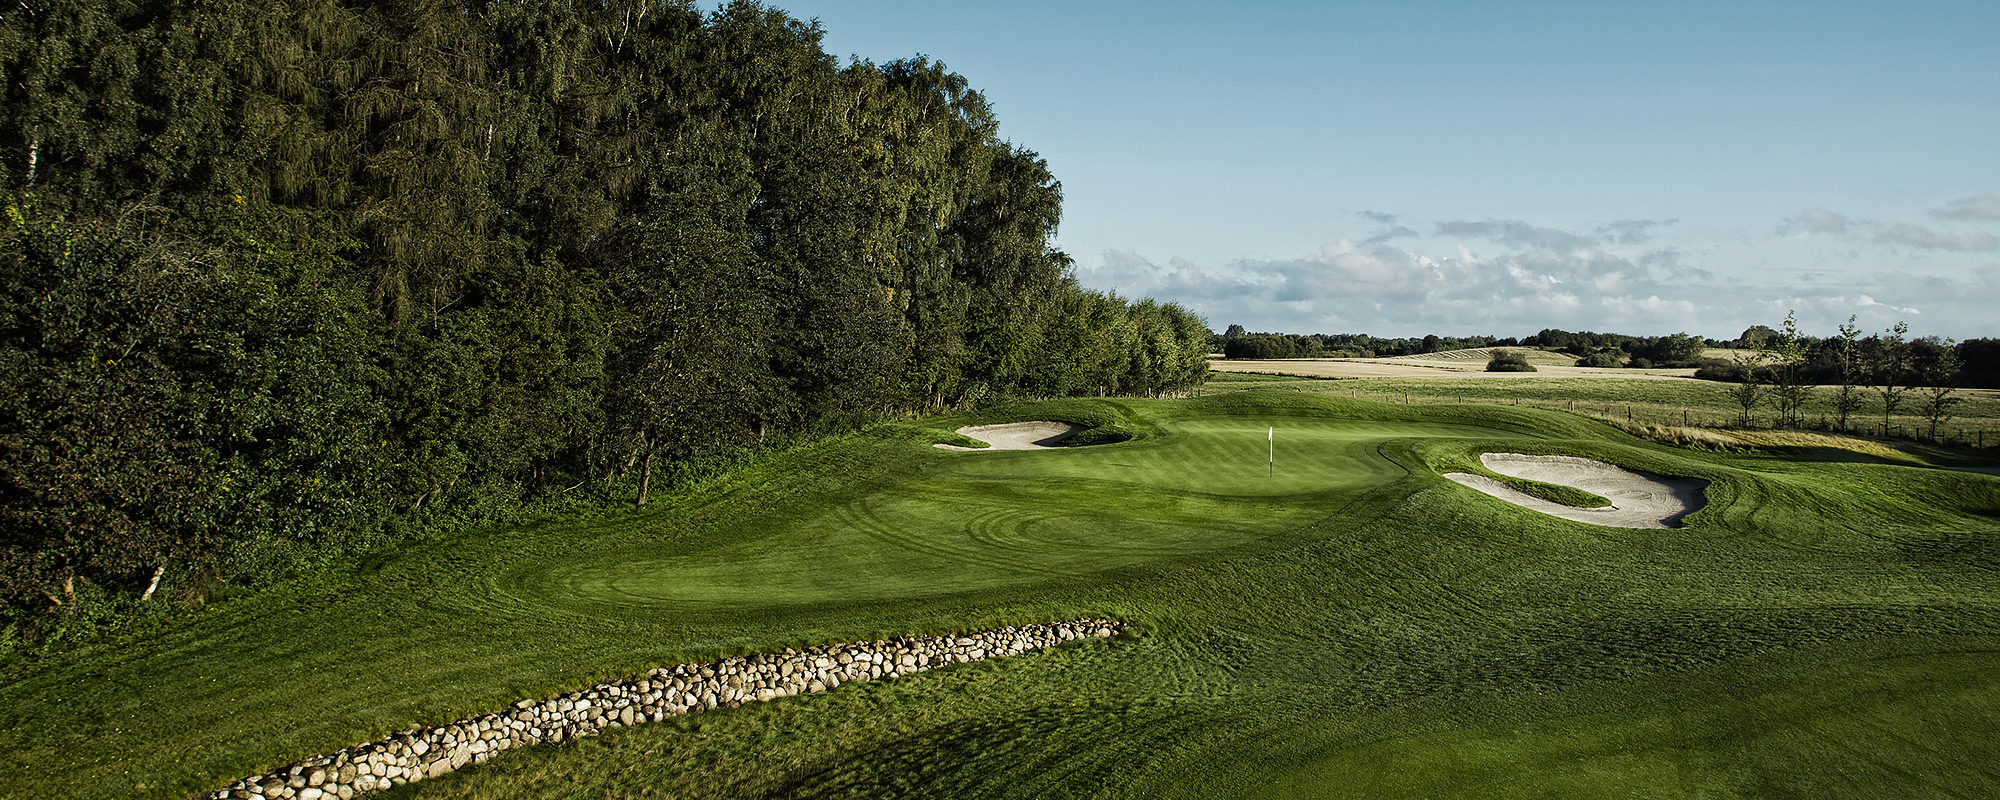 Best Golf Courses In 206 Countries